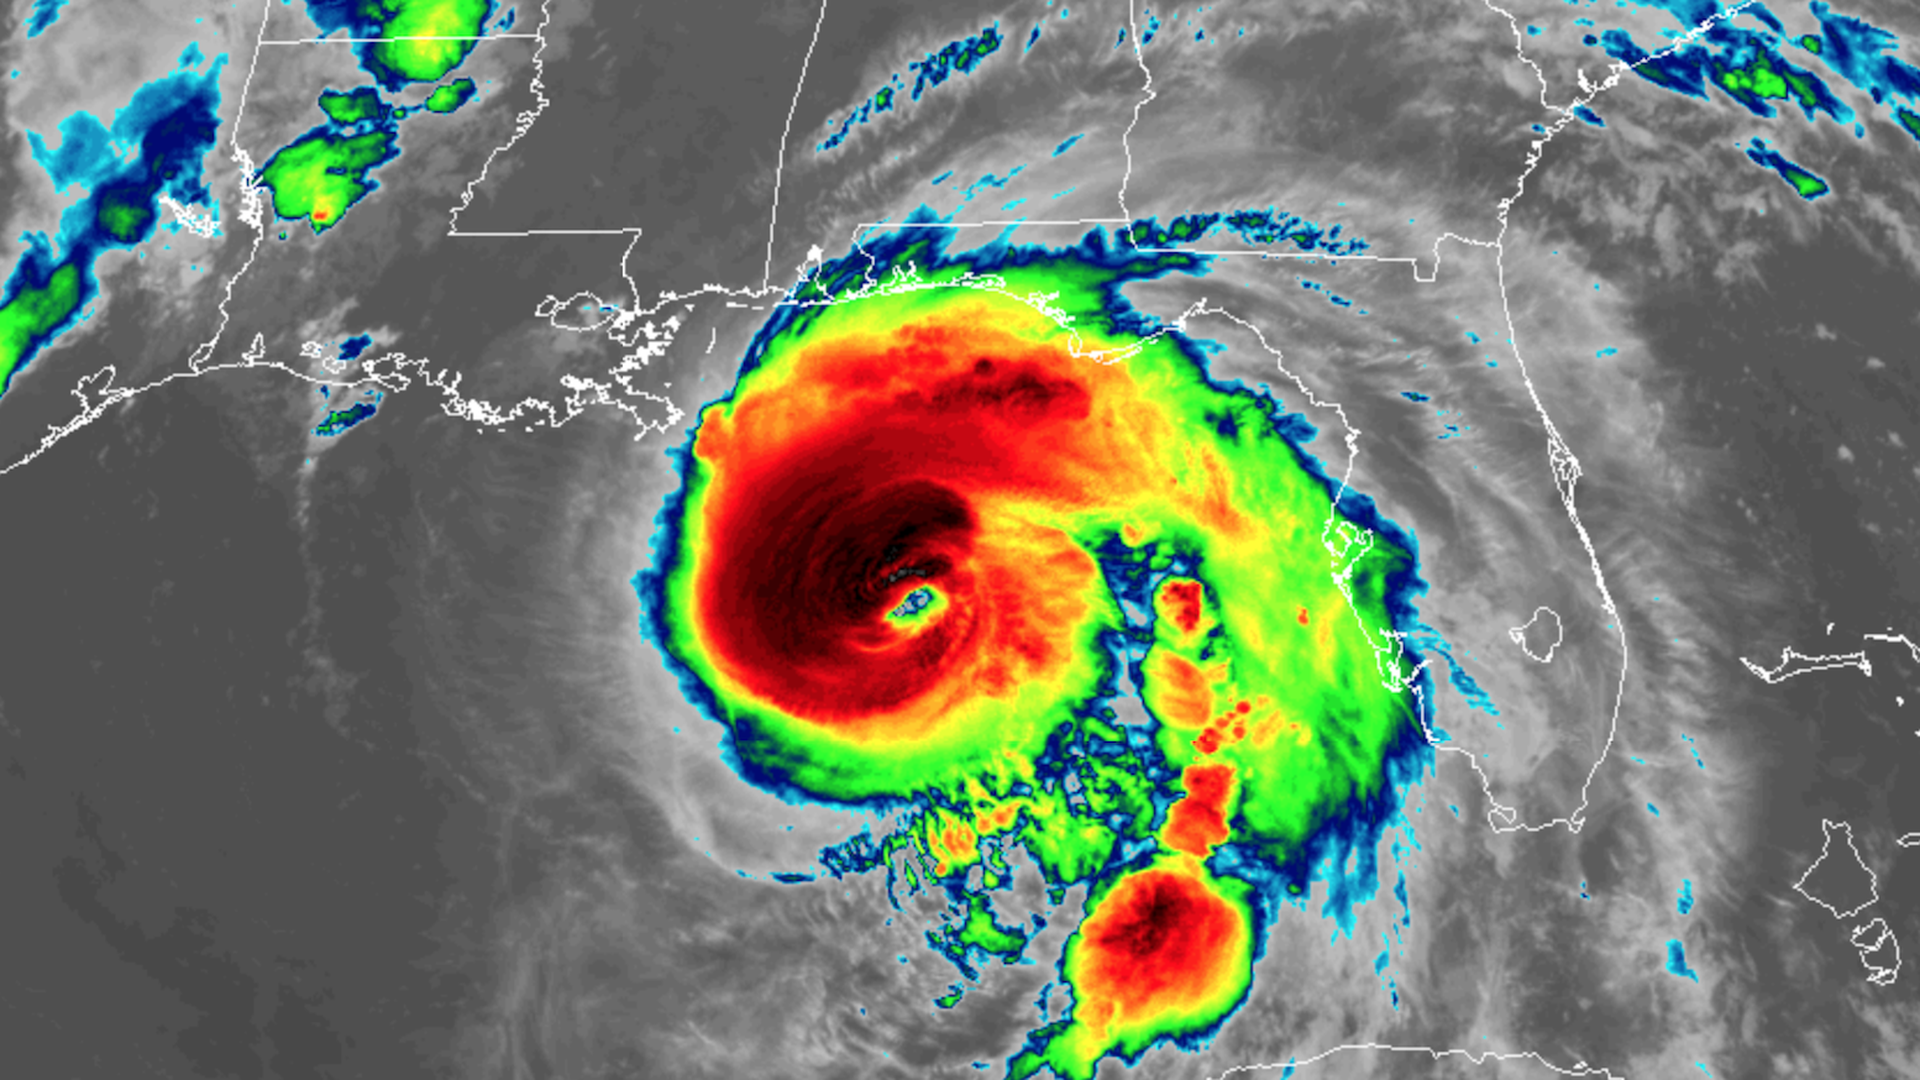 Satellite image of powerful Hurricane Michael nearing the Panhandle of Florida on October 9, 2018.